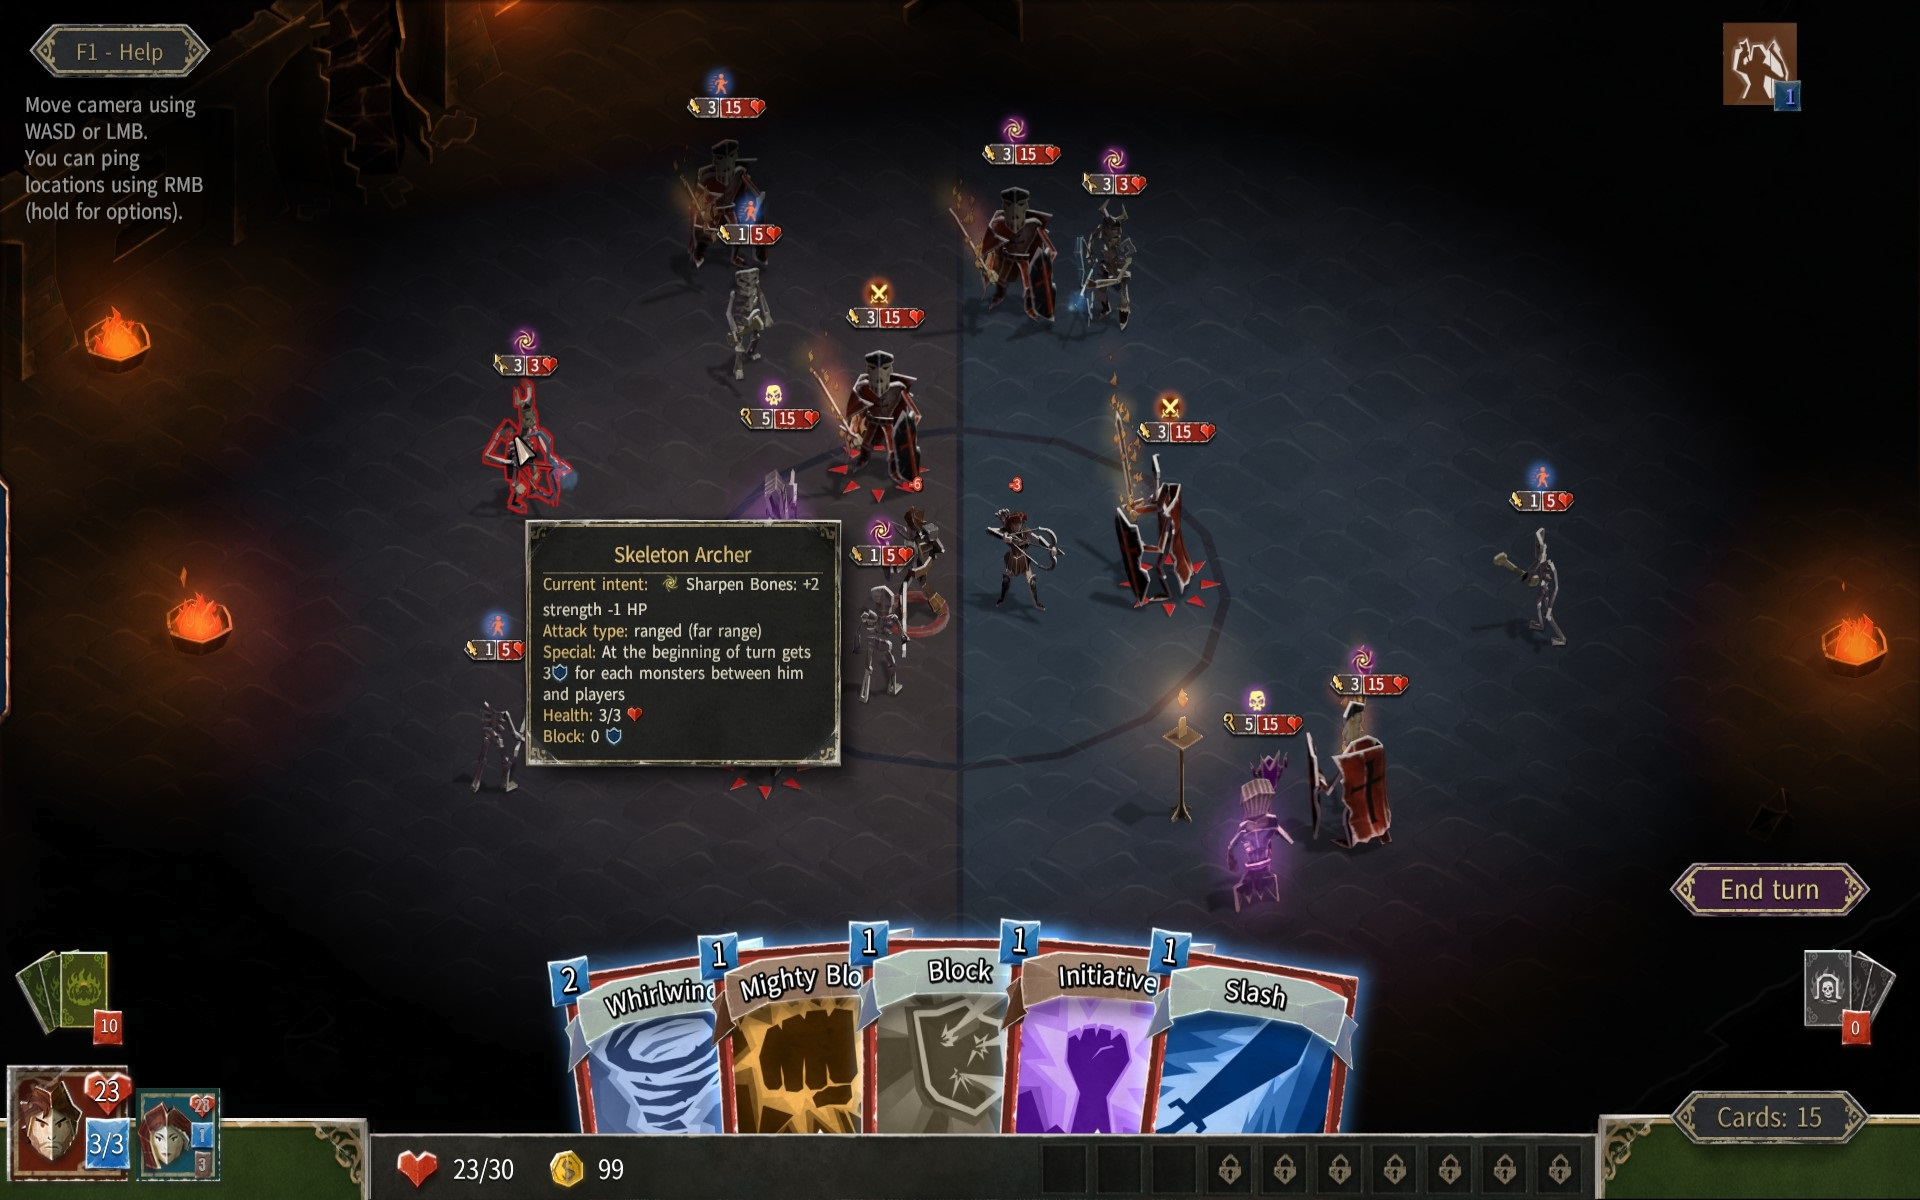 HELLCARD. Hovering over a skeleton archer to see its next action, stat information, and special ability